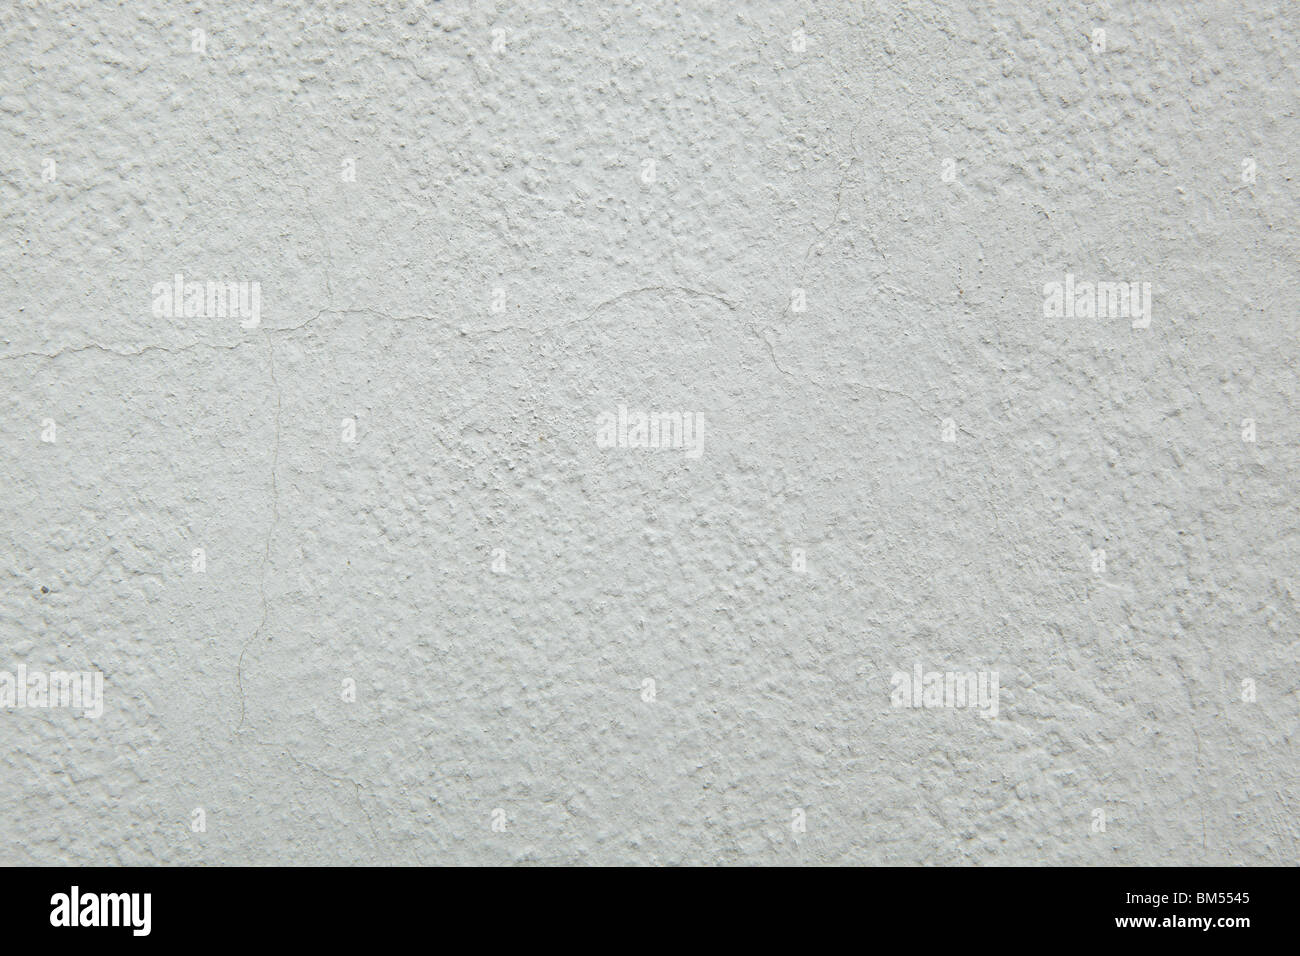 Light grey painted wall background with visible paint texture Stock